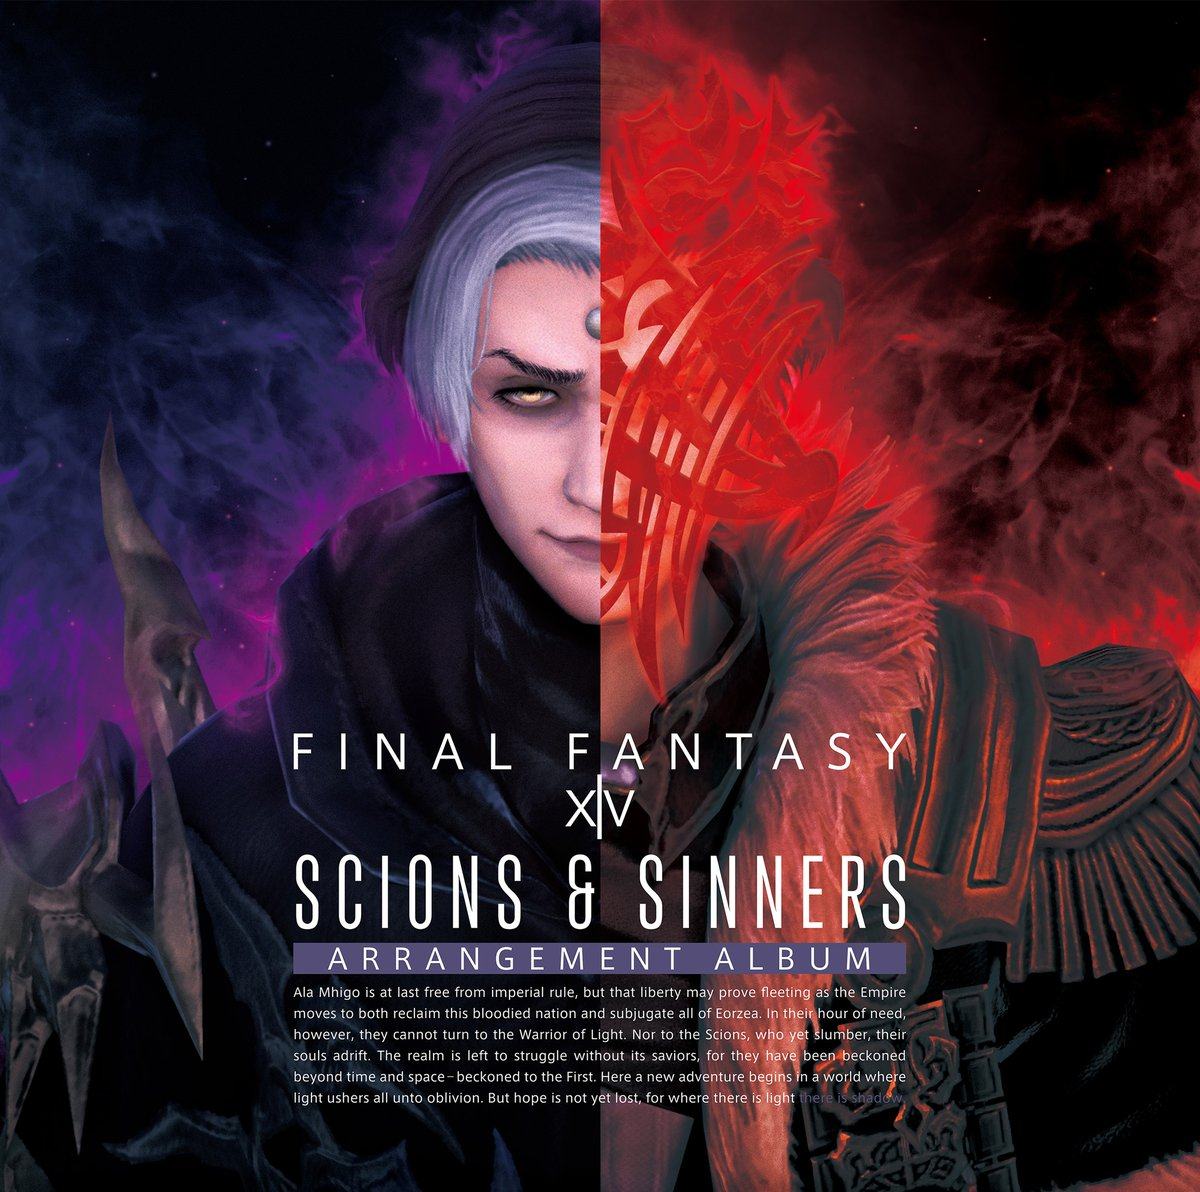 New #FFXIV Developers' Blog: 📜 Scions & Sinners and the Untempered Too 🌐   Need a jam session? We got you! 🤘 Check out the newest blog covering not one, but two new arrangement album releases! 💿